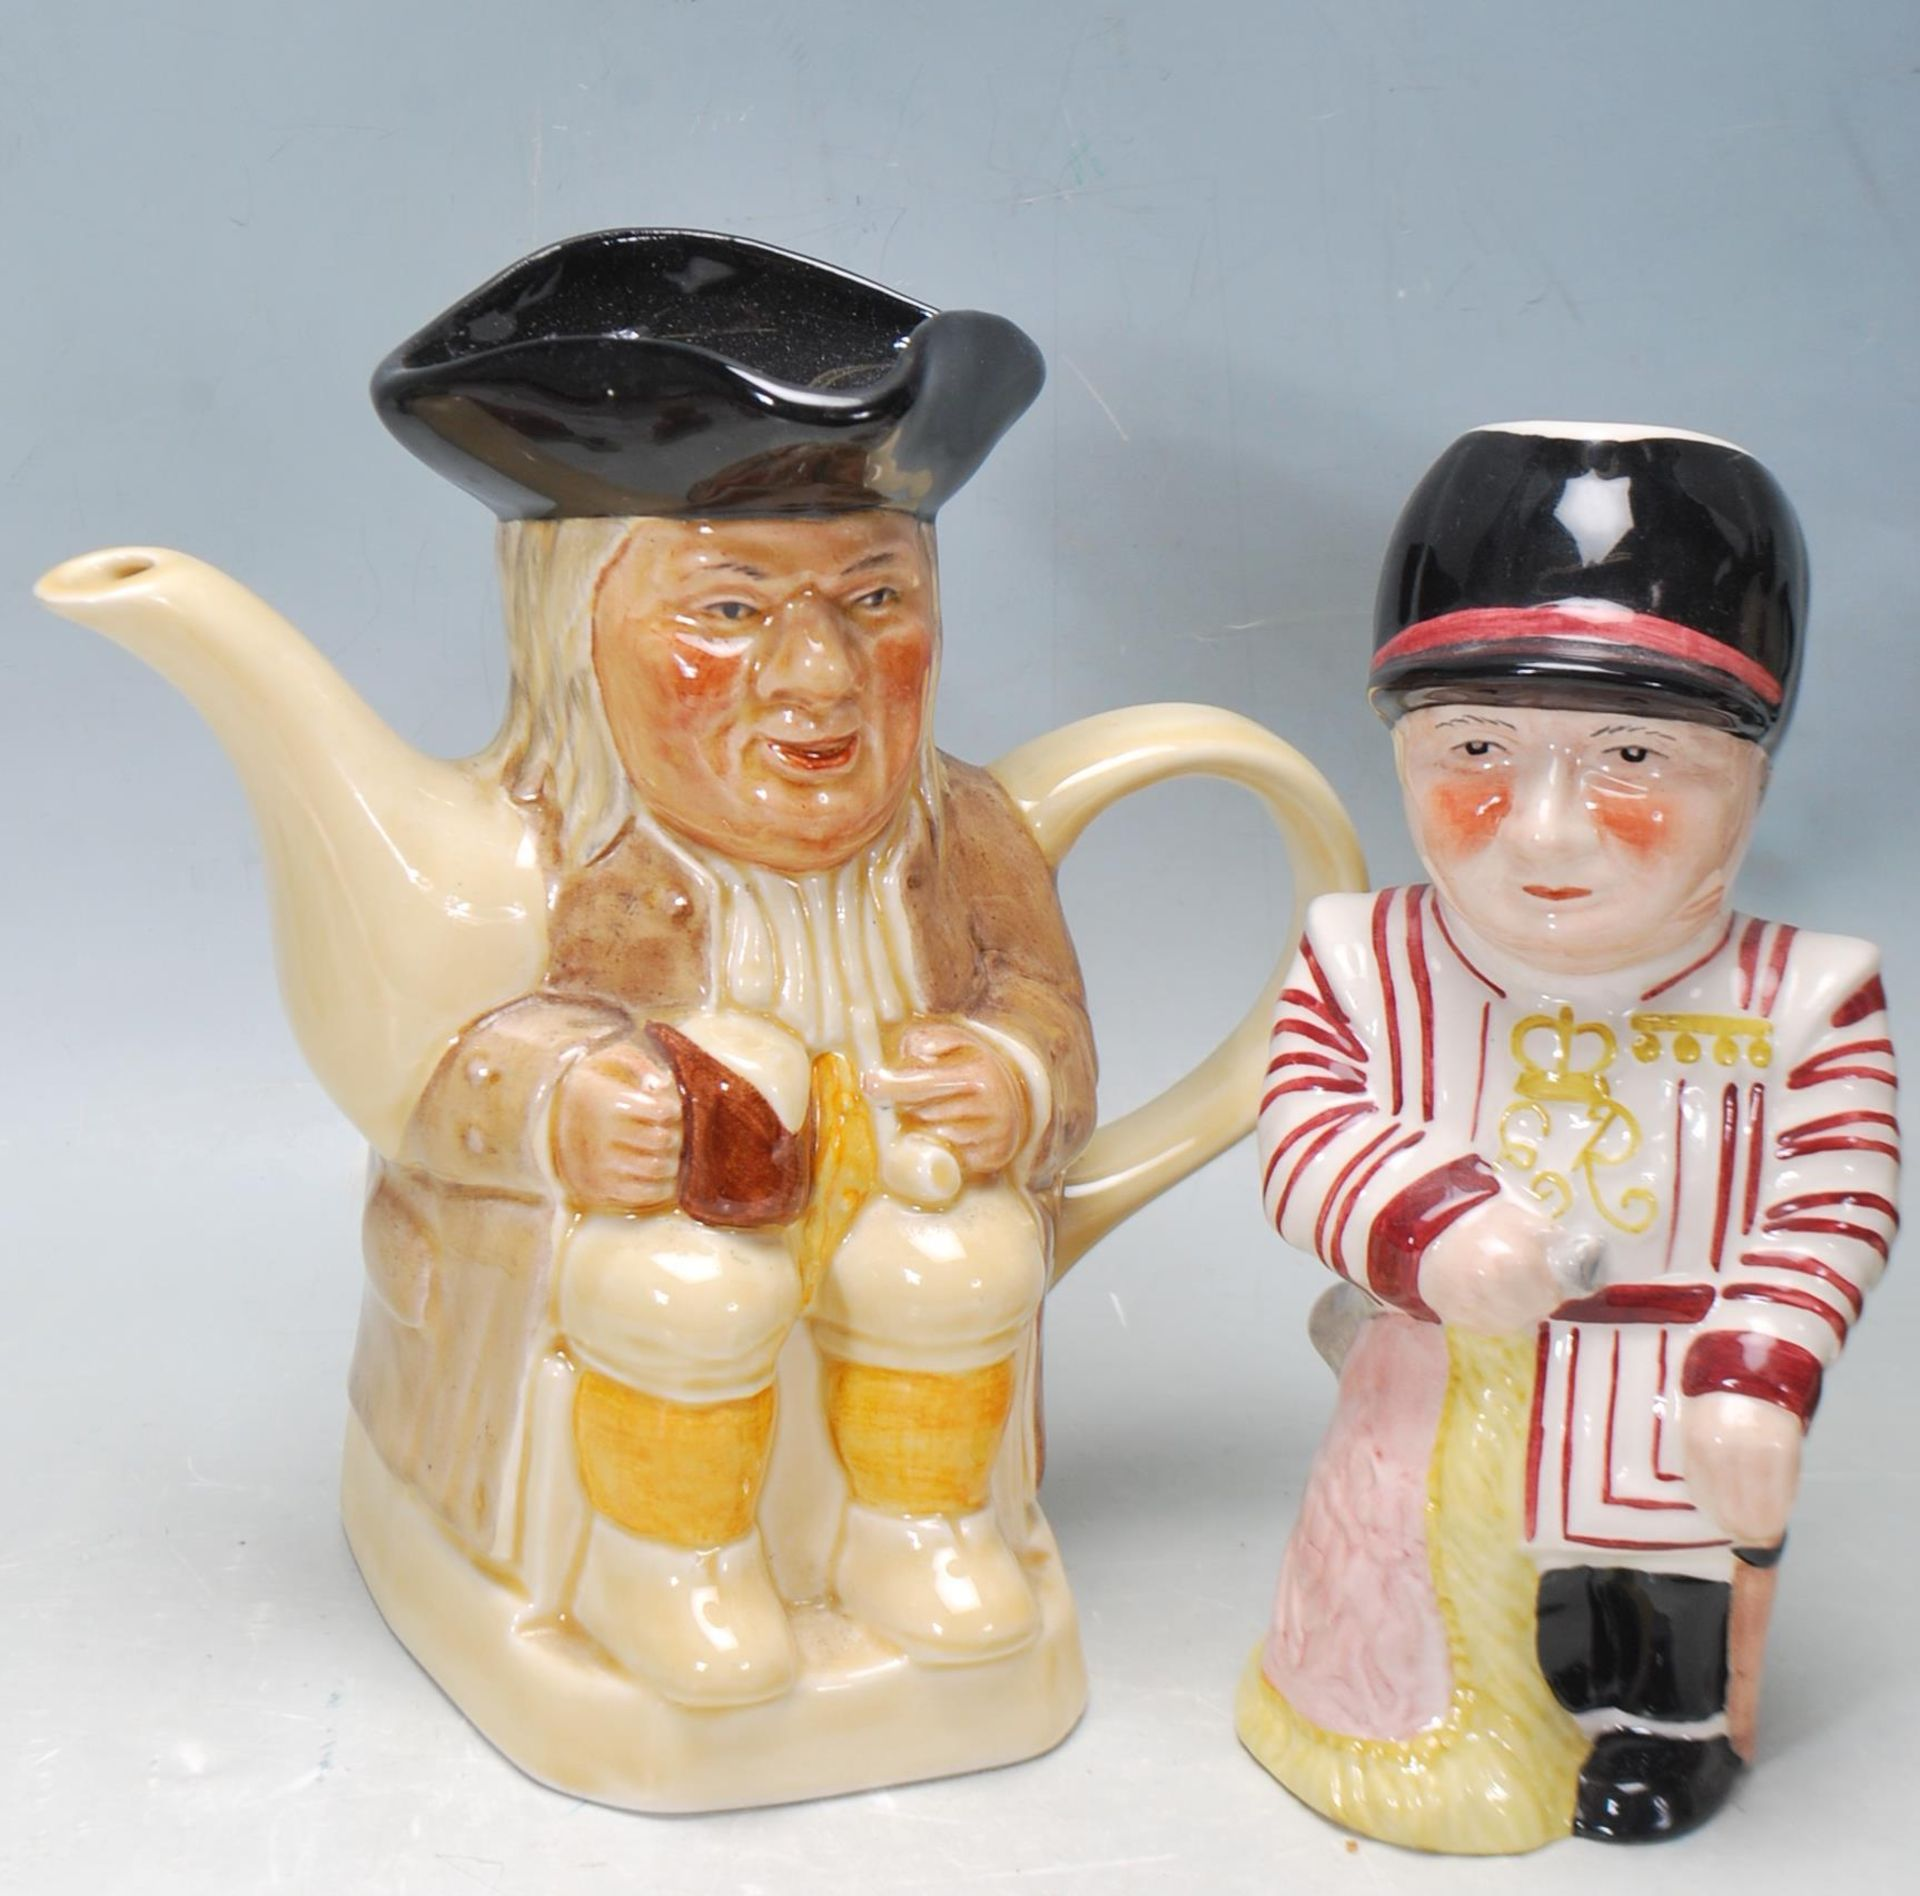 LARGE GROUP OF 20TH CENTURY CERAMIC TOBY JUGS - Image 5 of 9